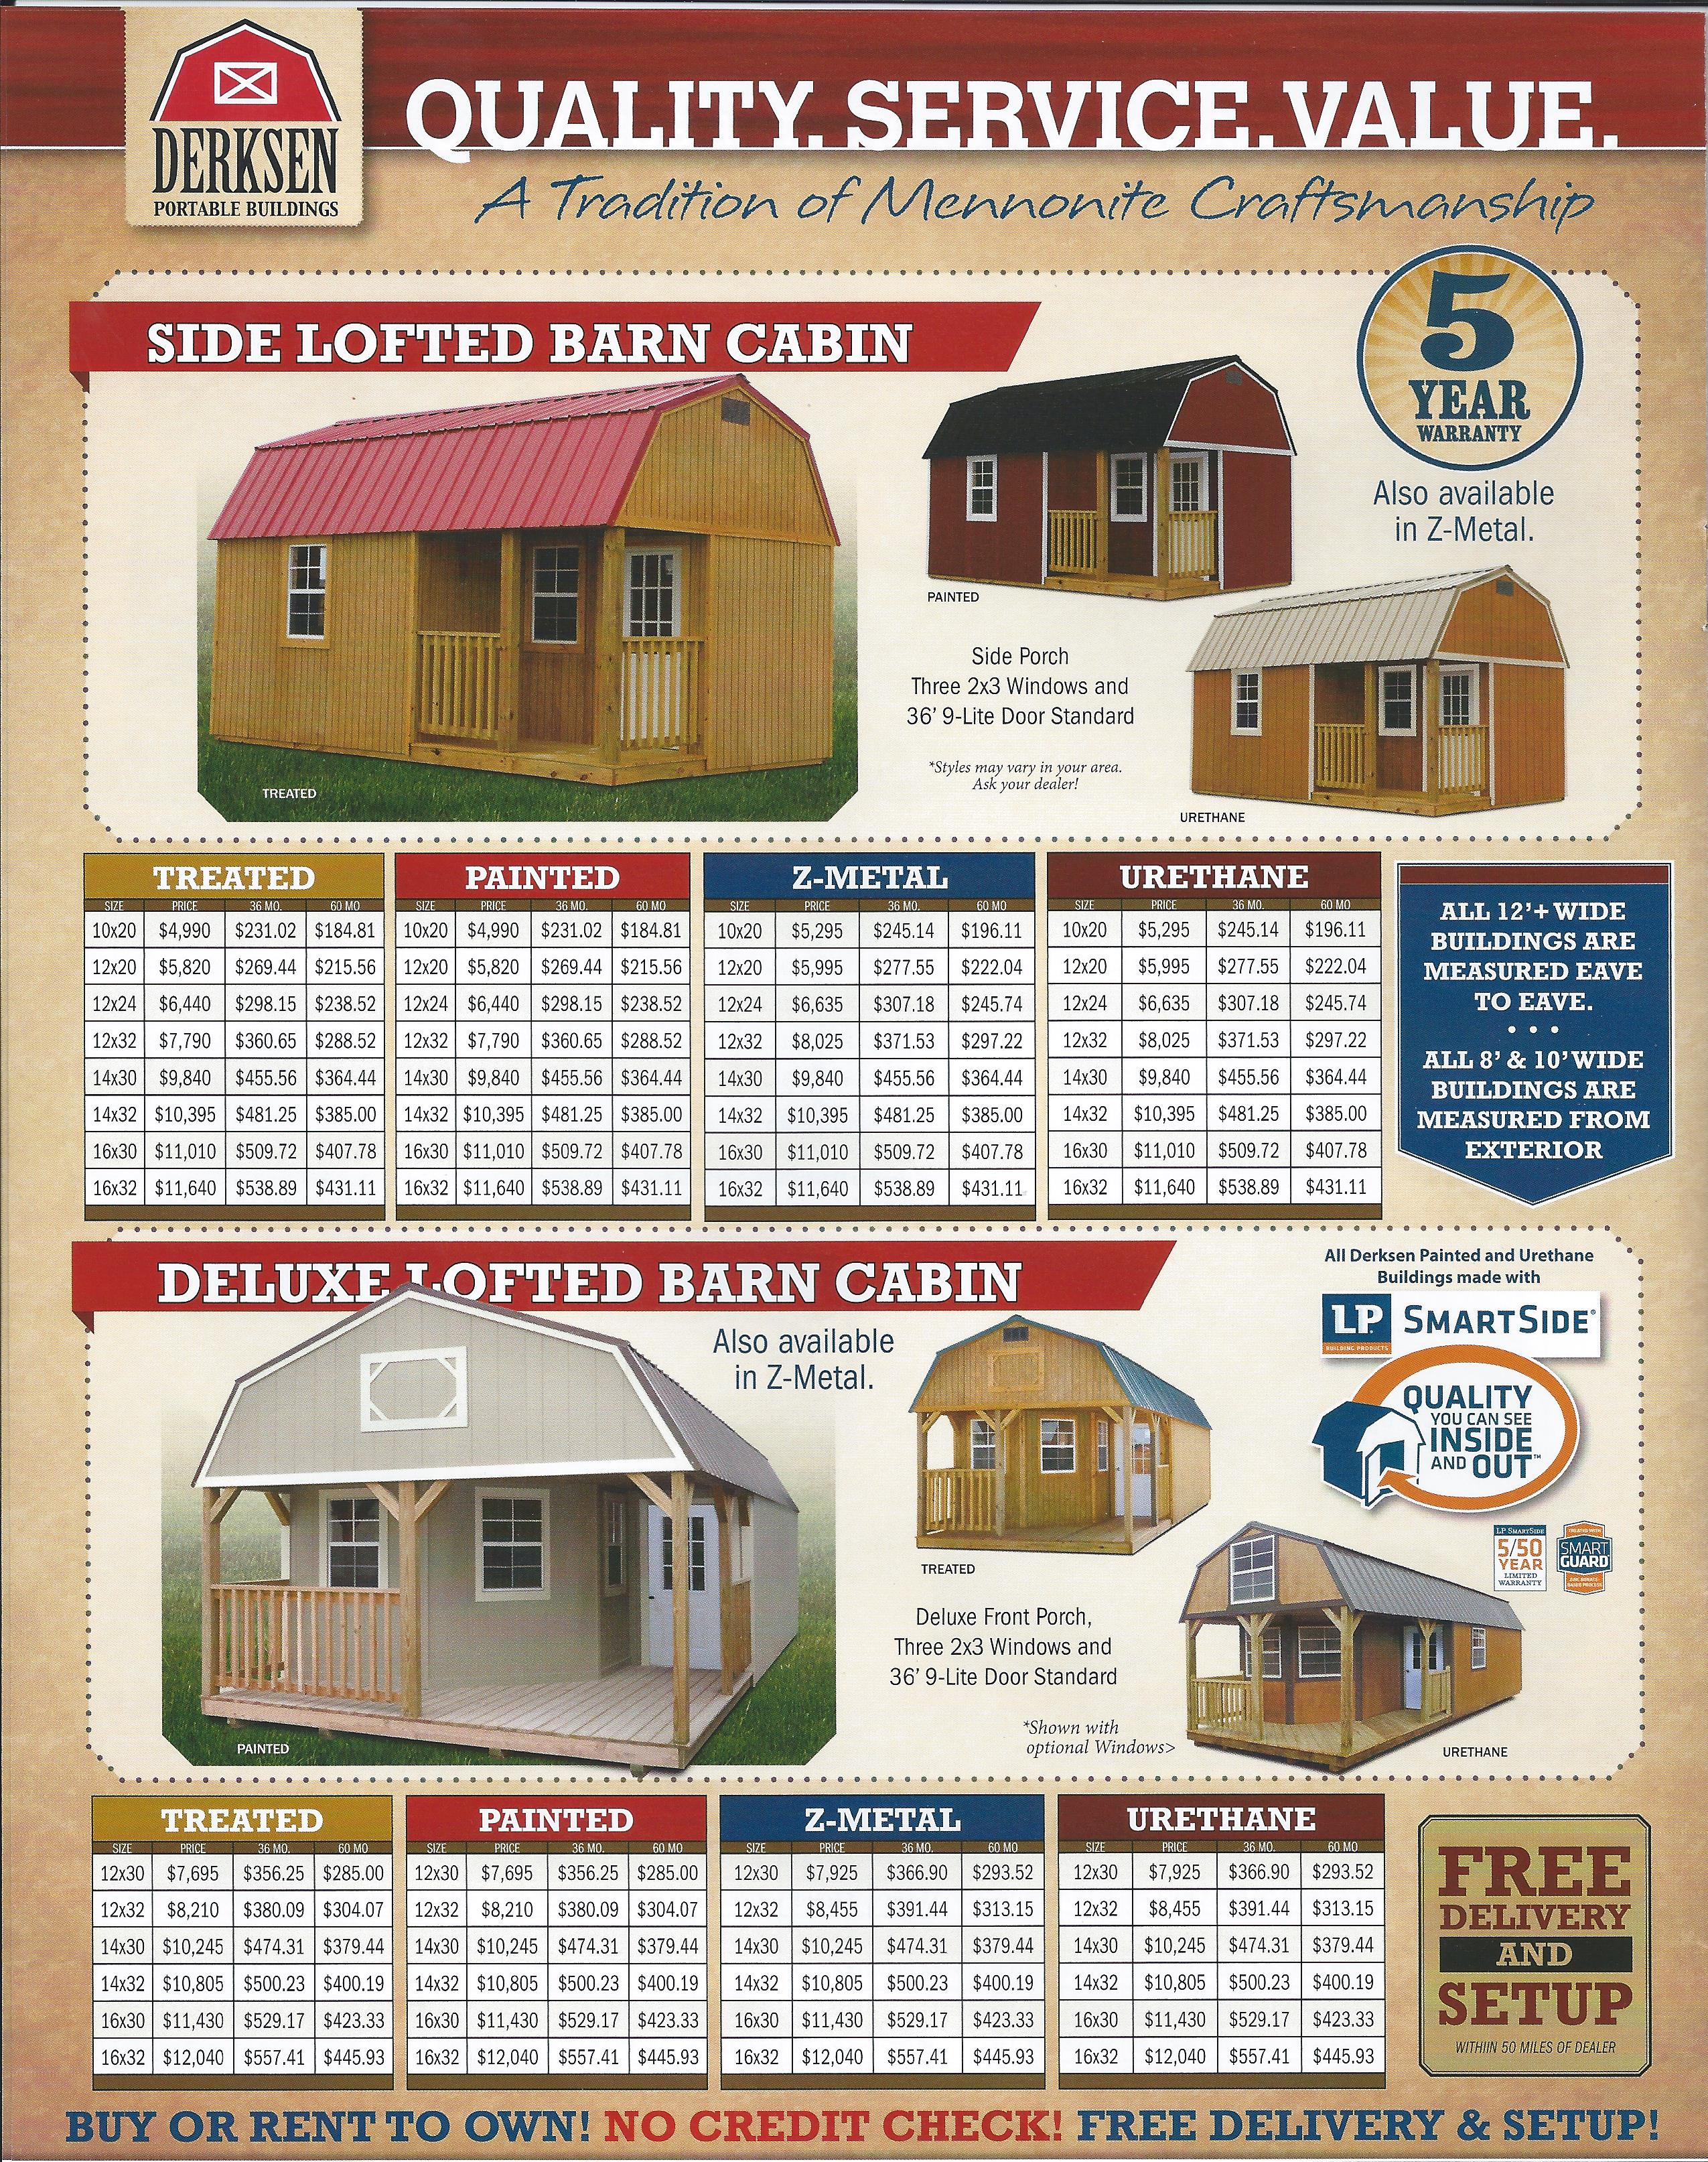 SIDE LOFTED BARN CABIN – DELUXE LOFTED BARN CABIN | 706-389-0932